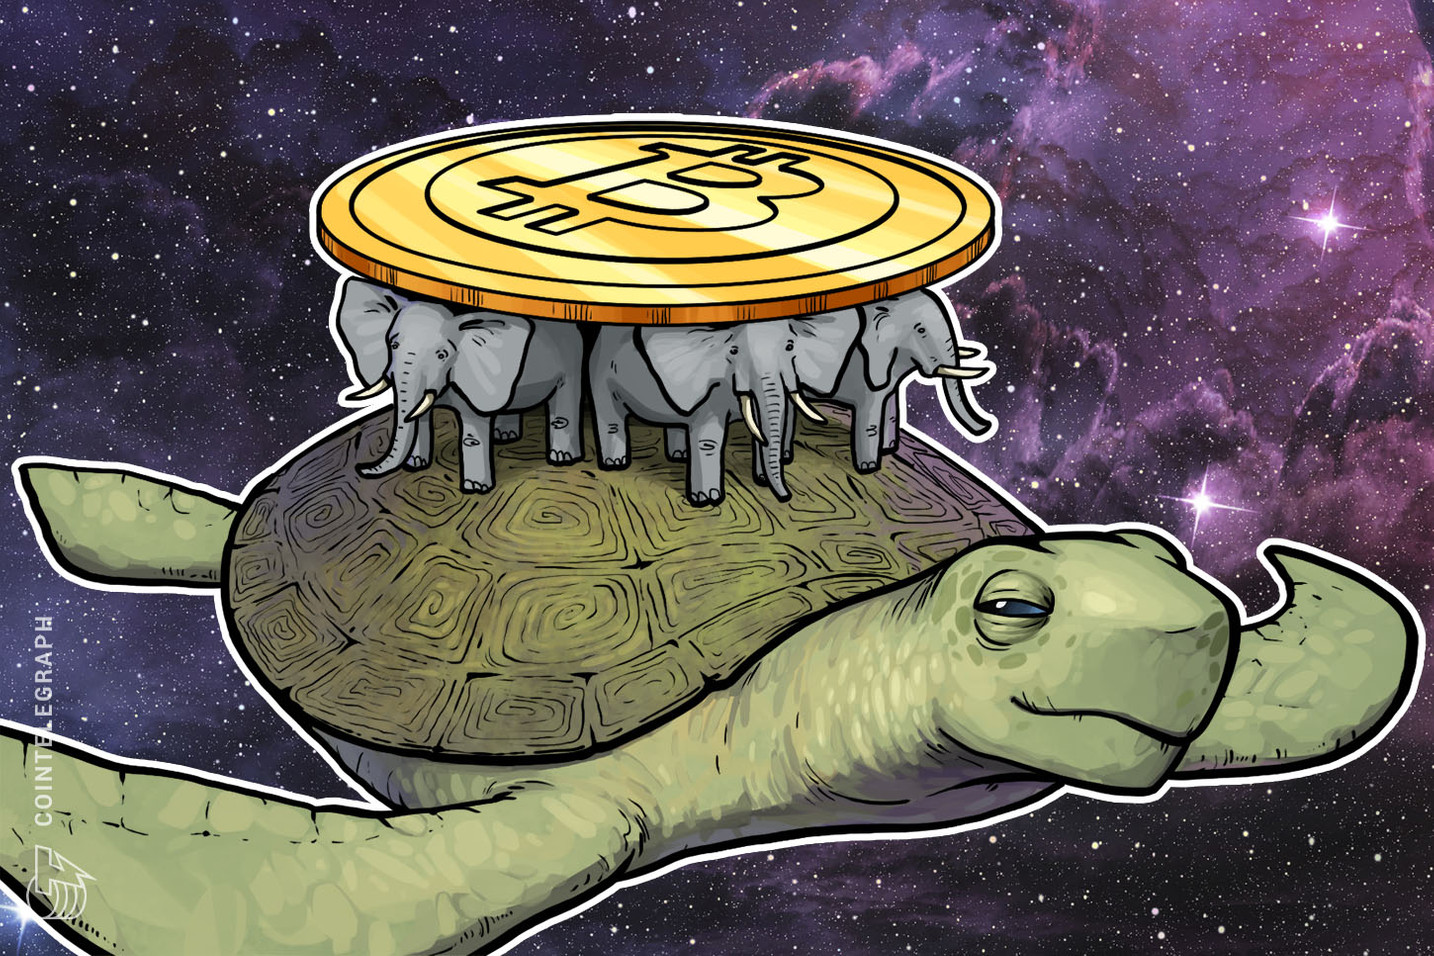 Bitcoin's Volatility at Yearly Low, Signalling Bottom, Says President of Blue Line Futures